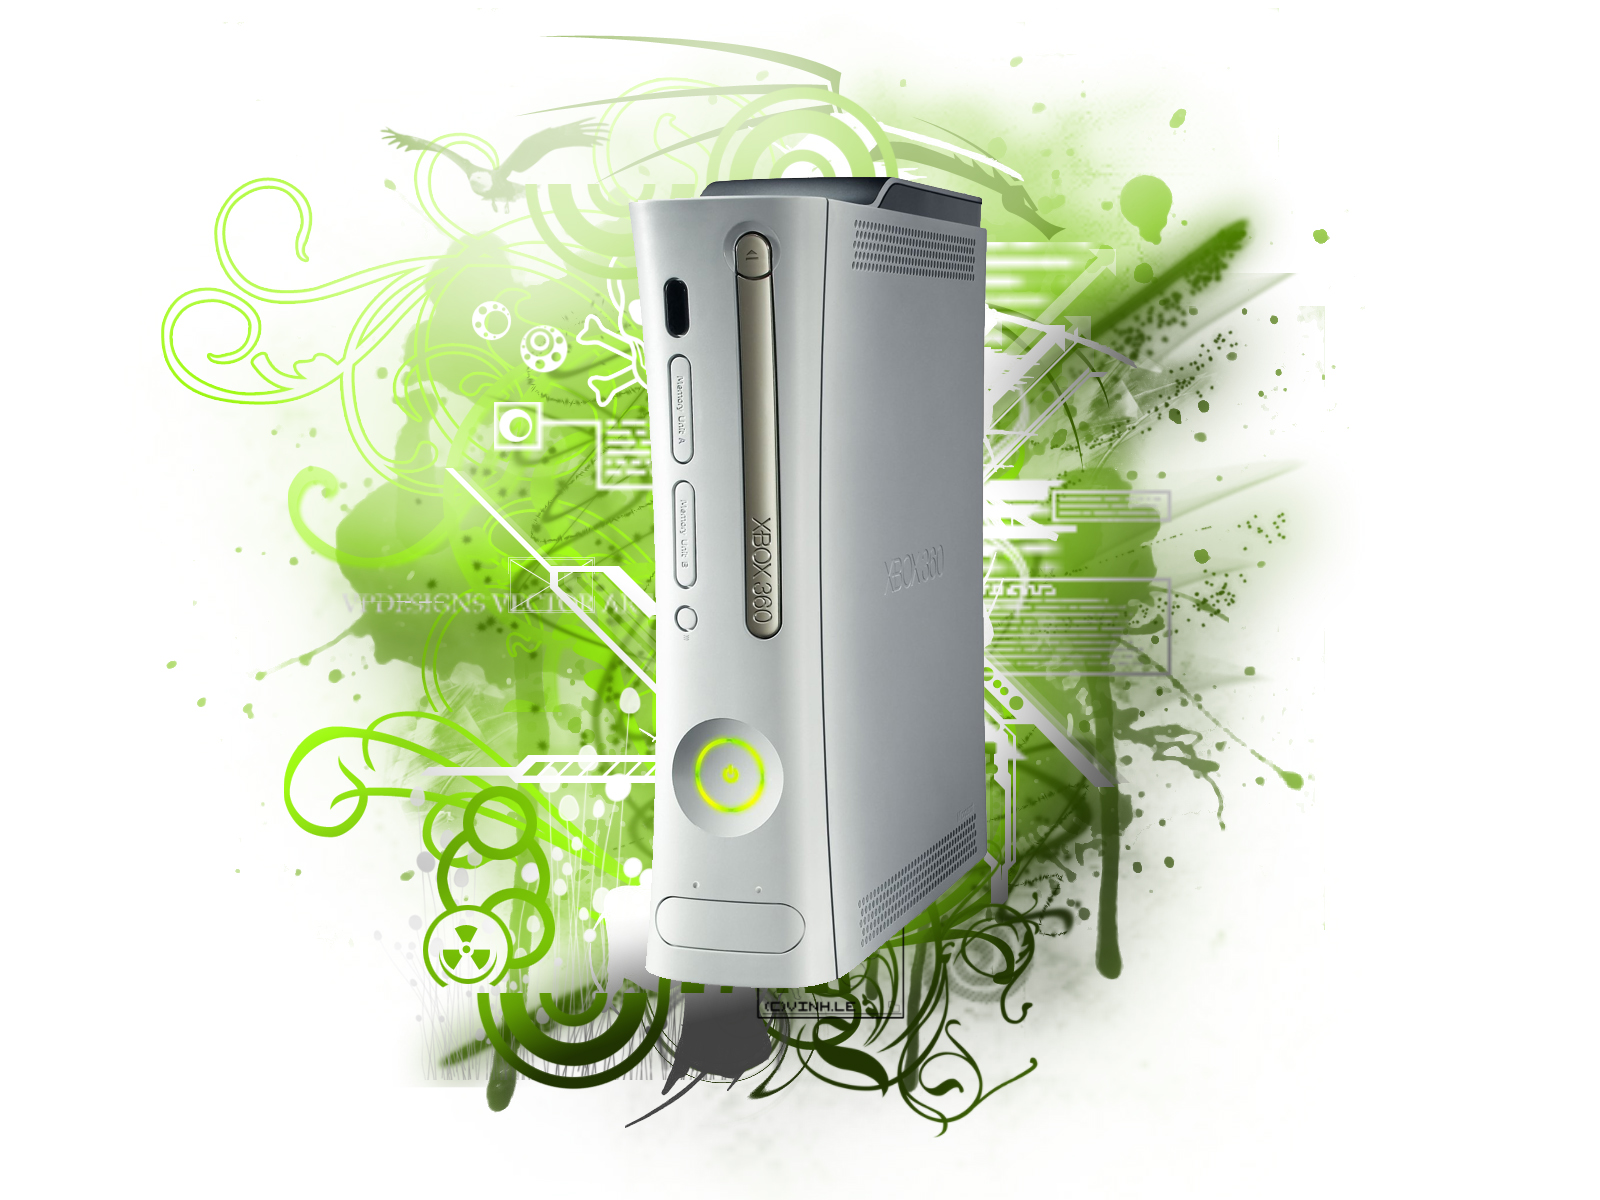 xbox_360_wallpaper_by_vinh291.jpg